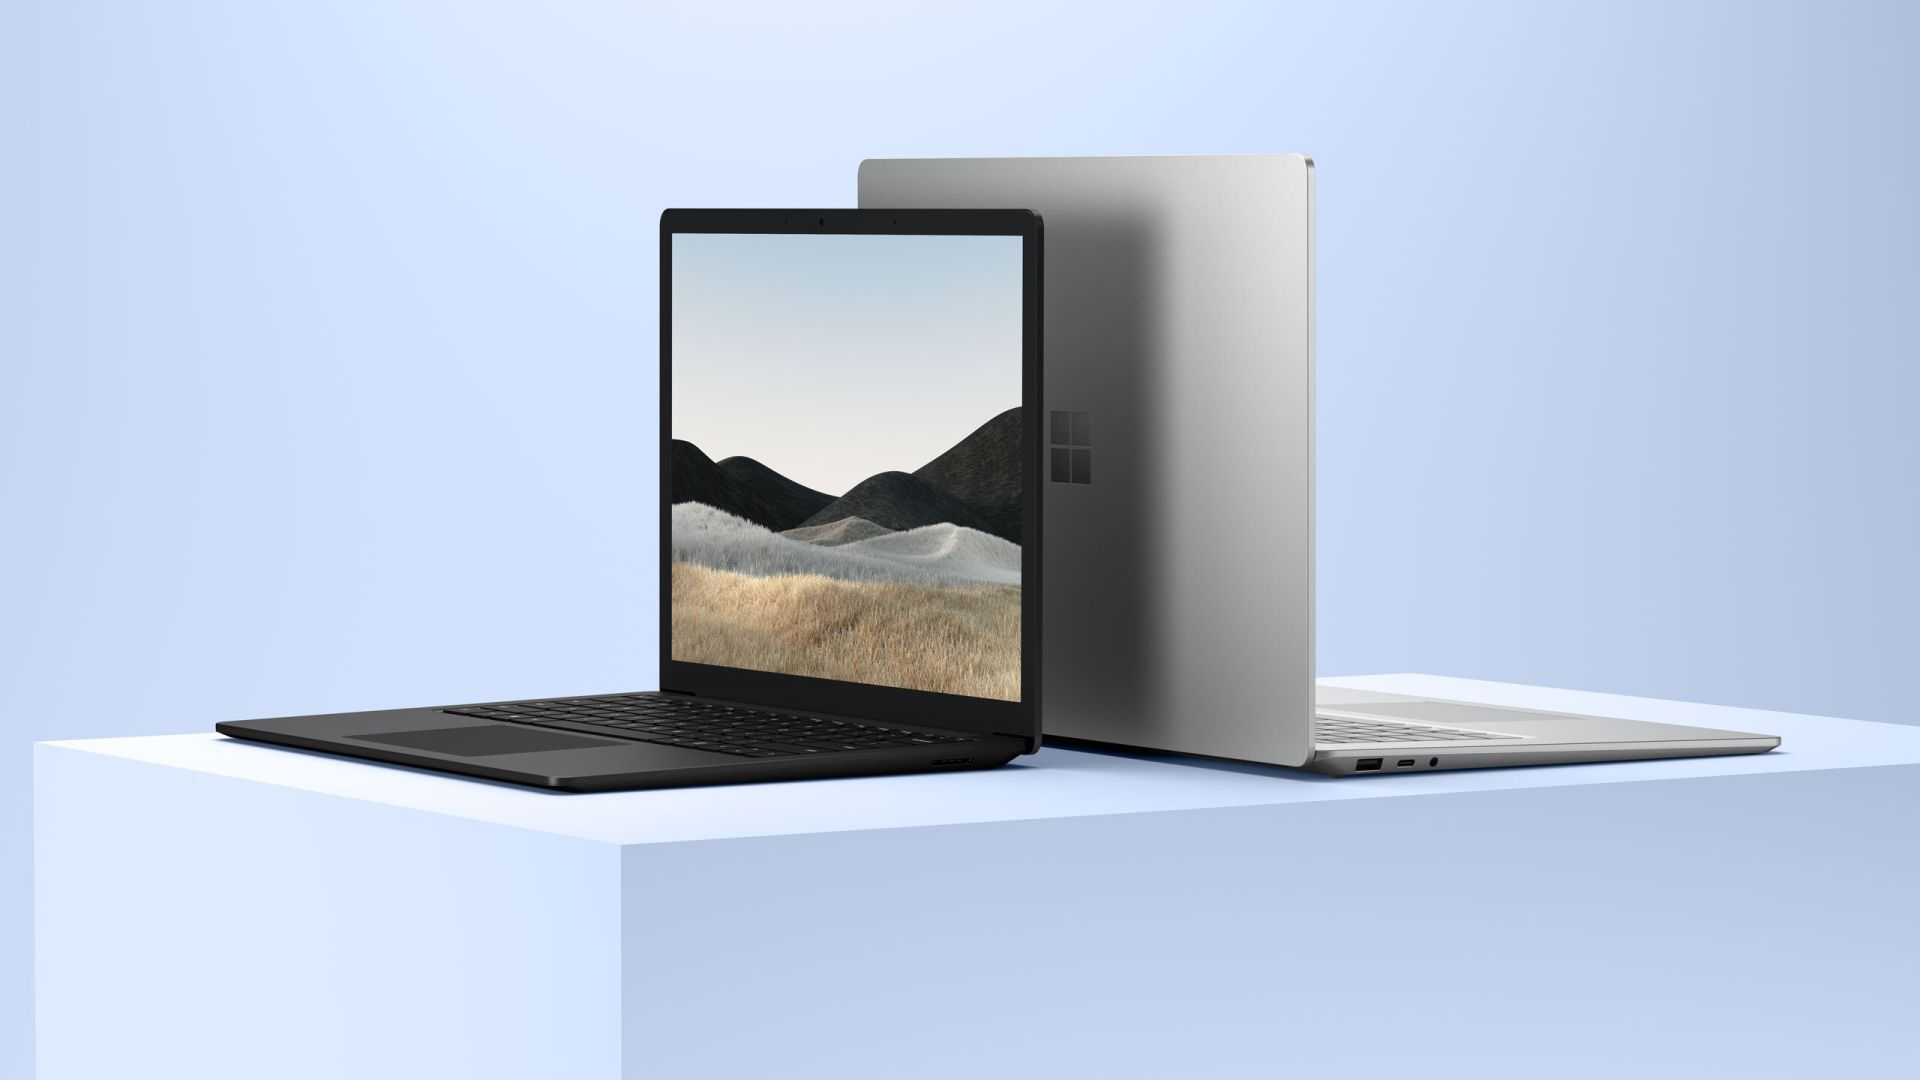 Microsoft представила Surface Laptop 4 на базе Intel Tiger Lake и AMD Renoir